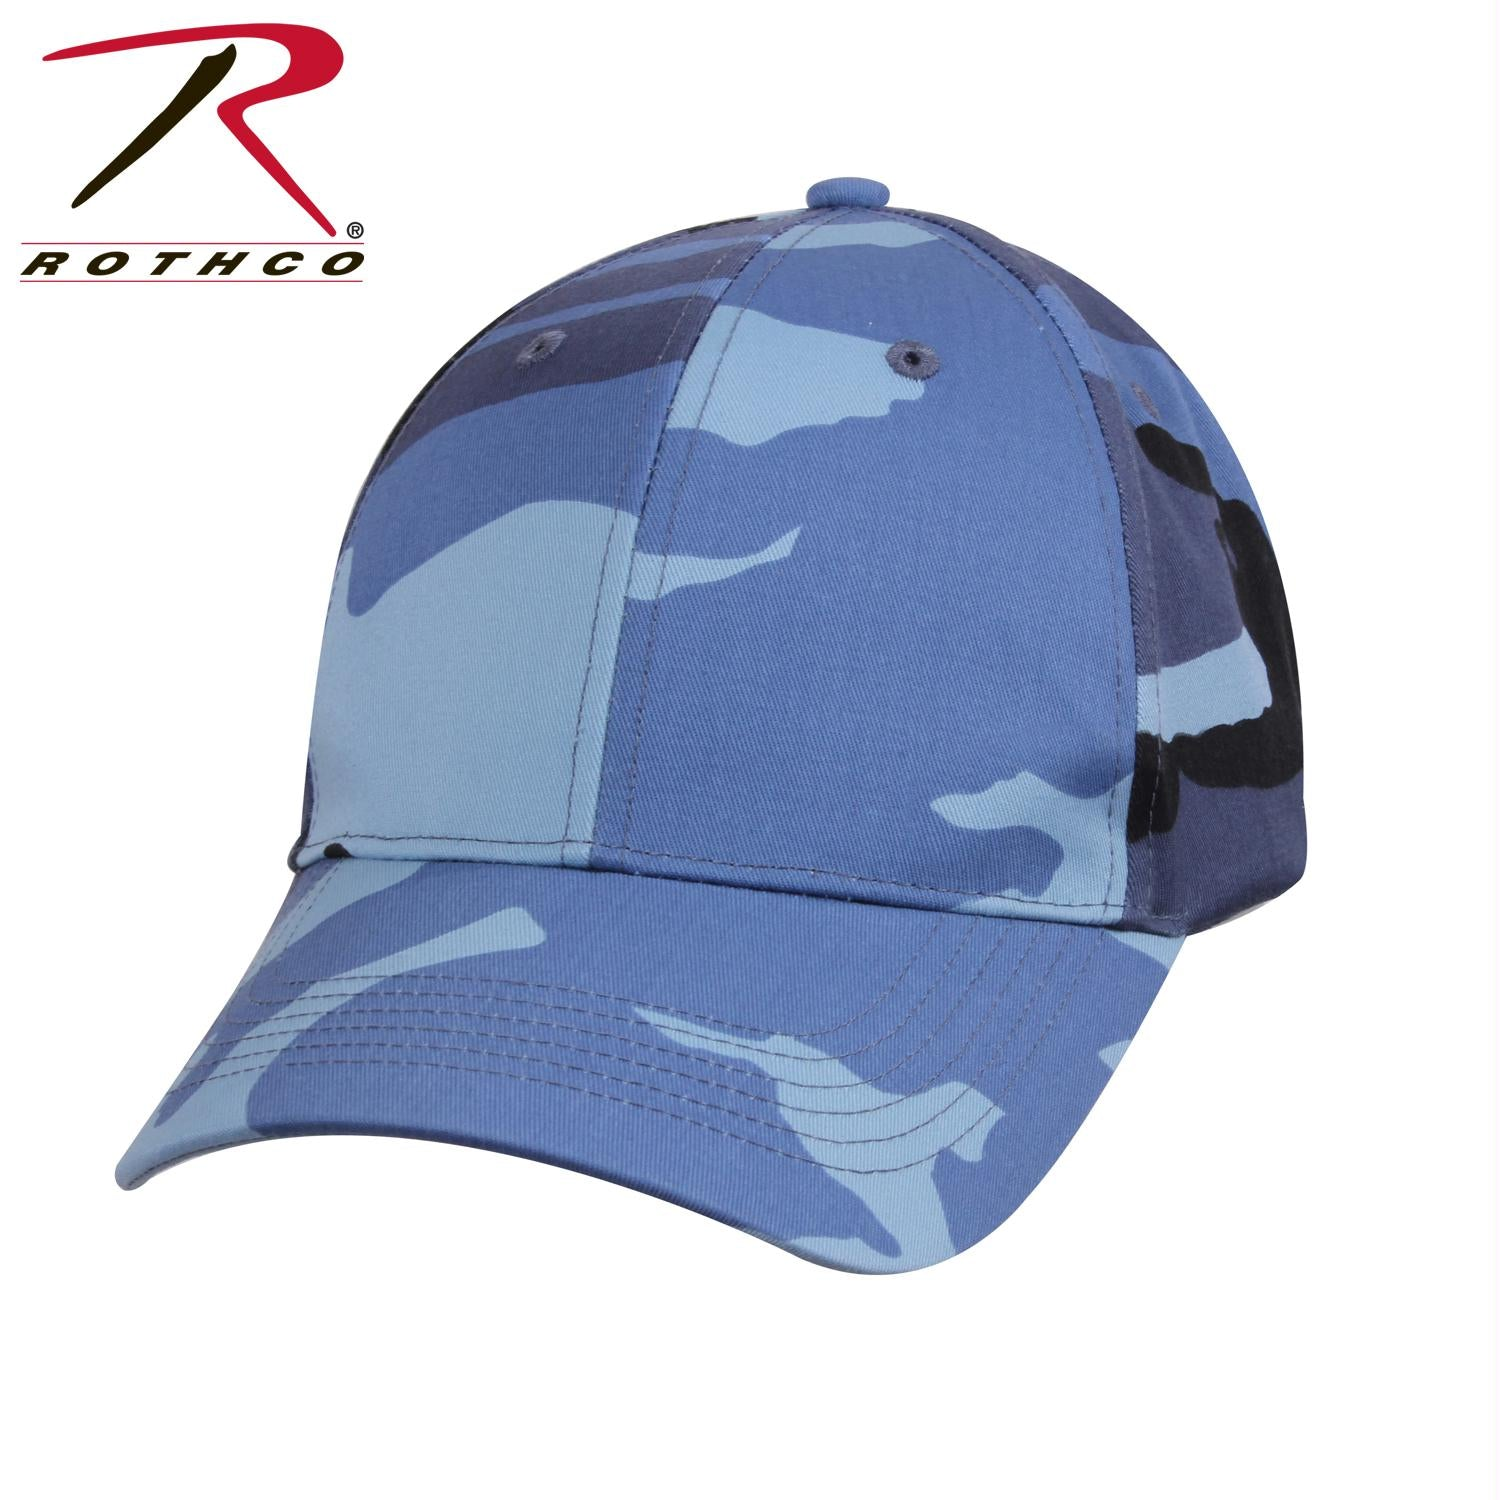 Rothco Supreme Camo Low Profile Cap - Sky Blue Camo / One Size